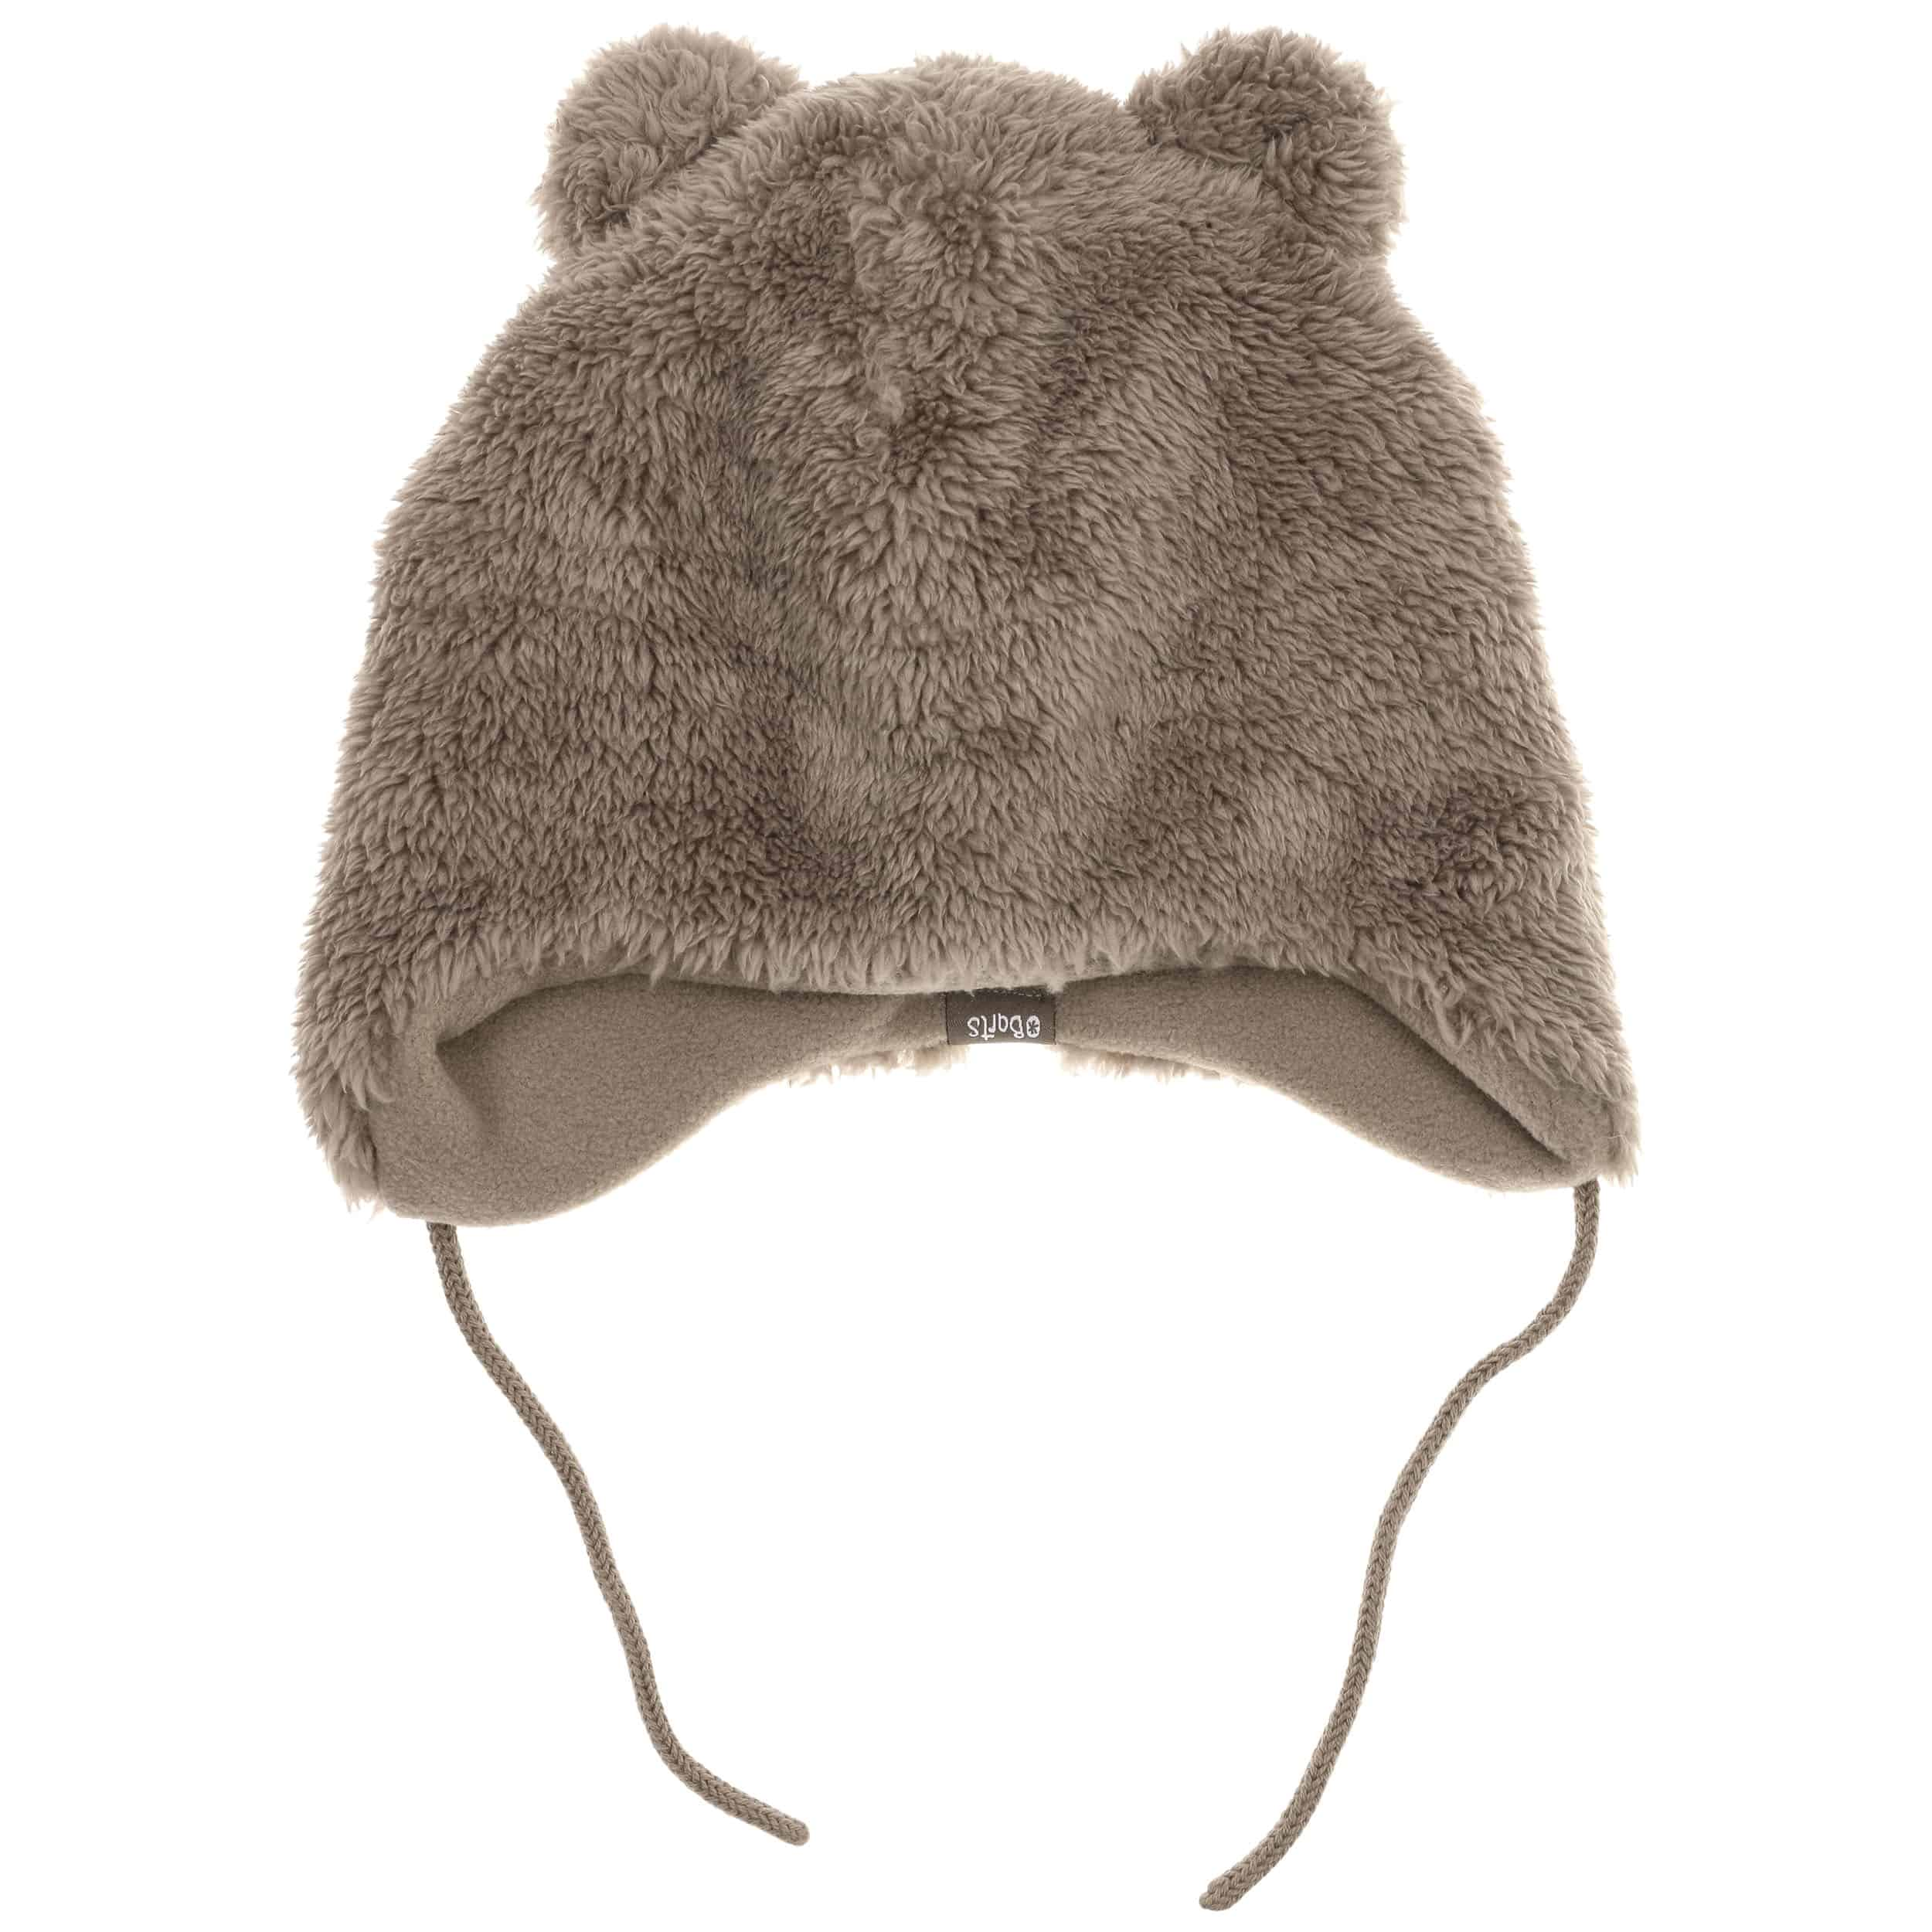 noa bear kids winter hat by barts eur 19 99 hats. Black Bedroom Furniture Sets. Home Design Ideas